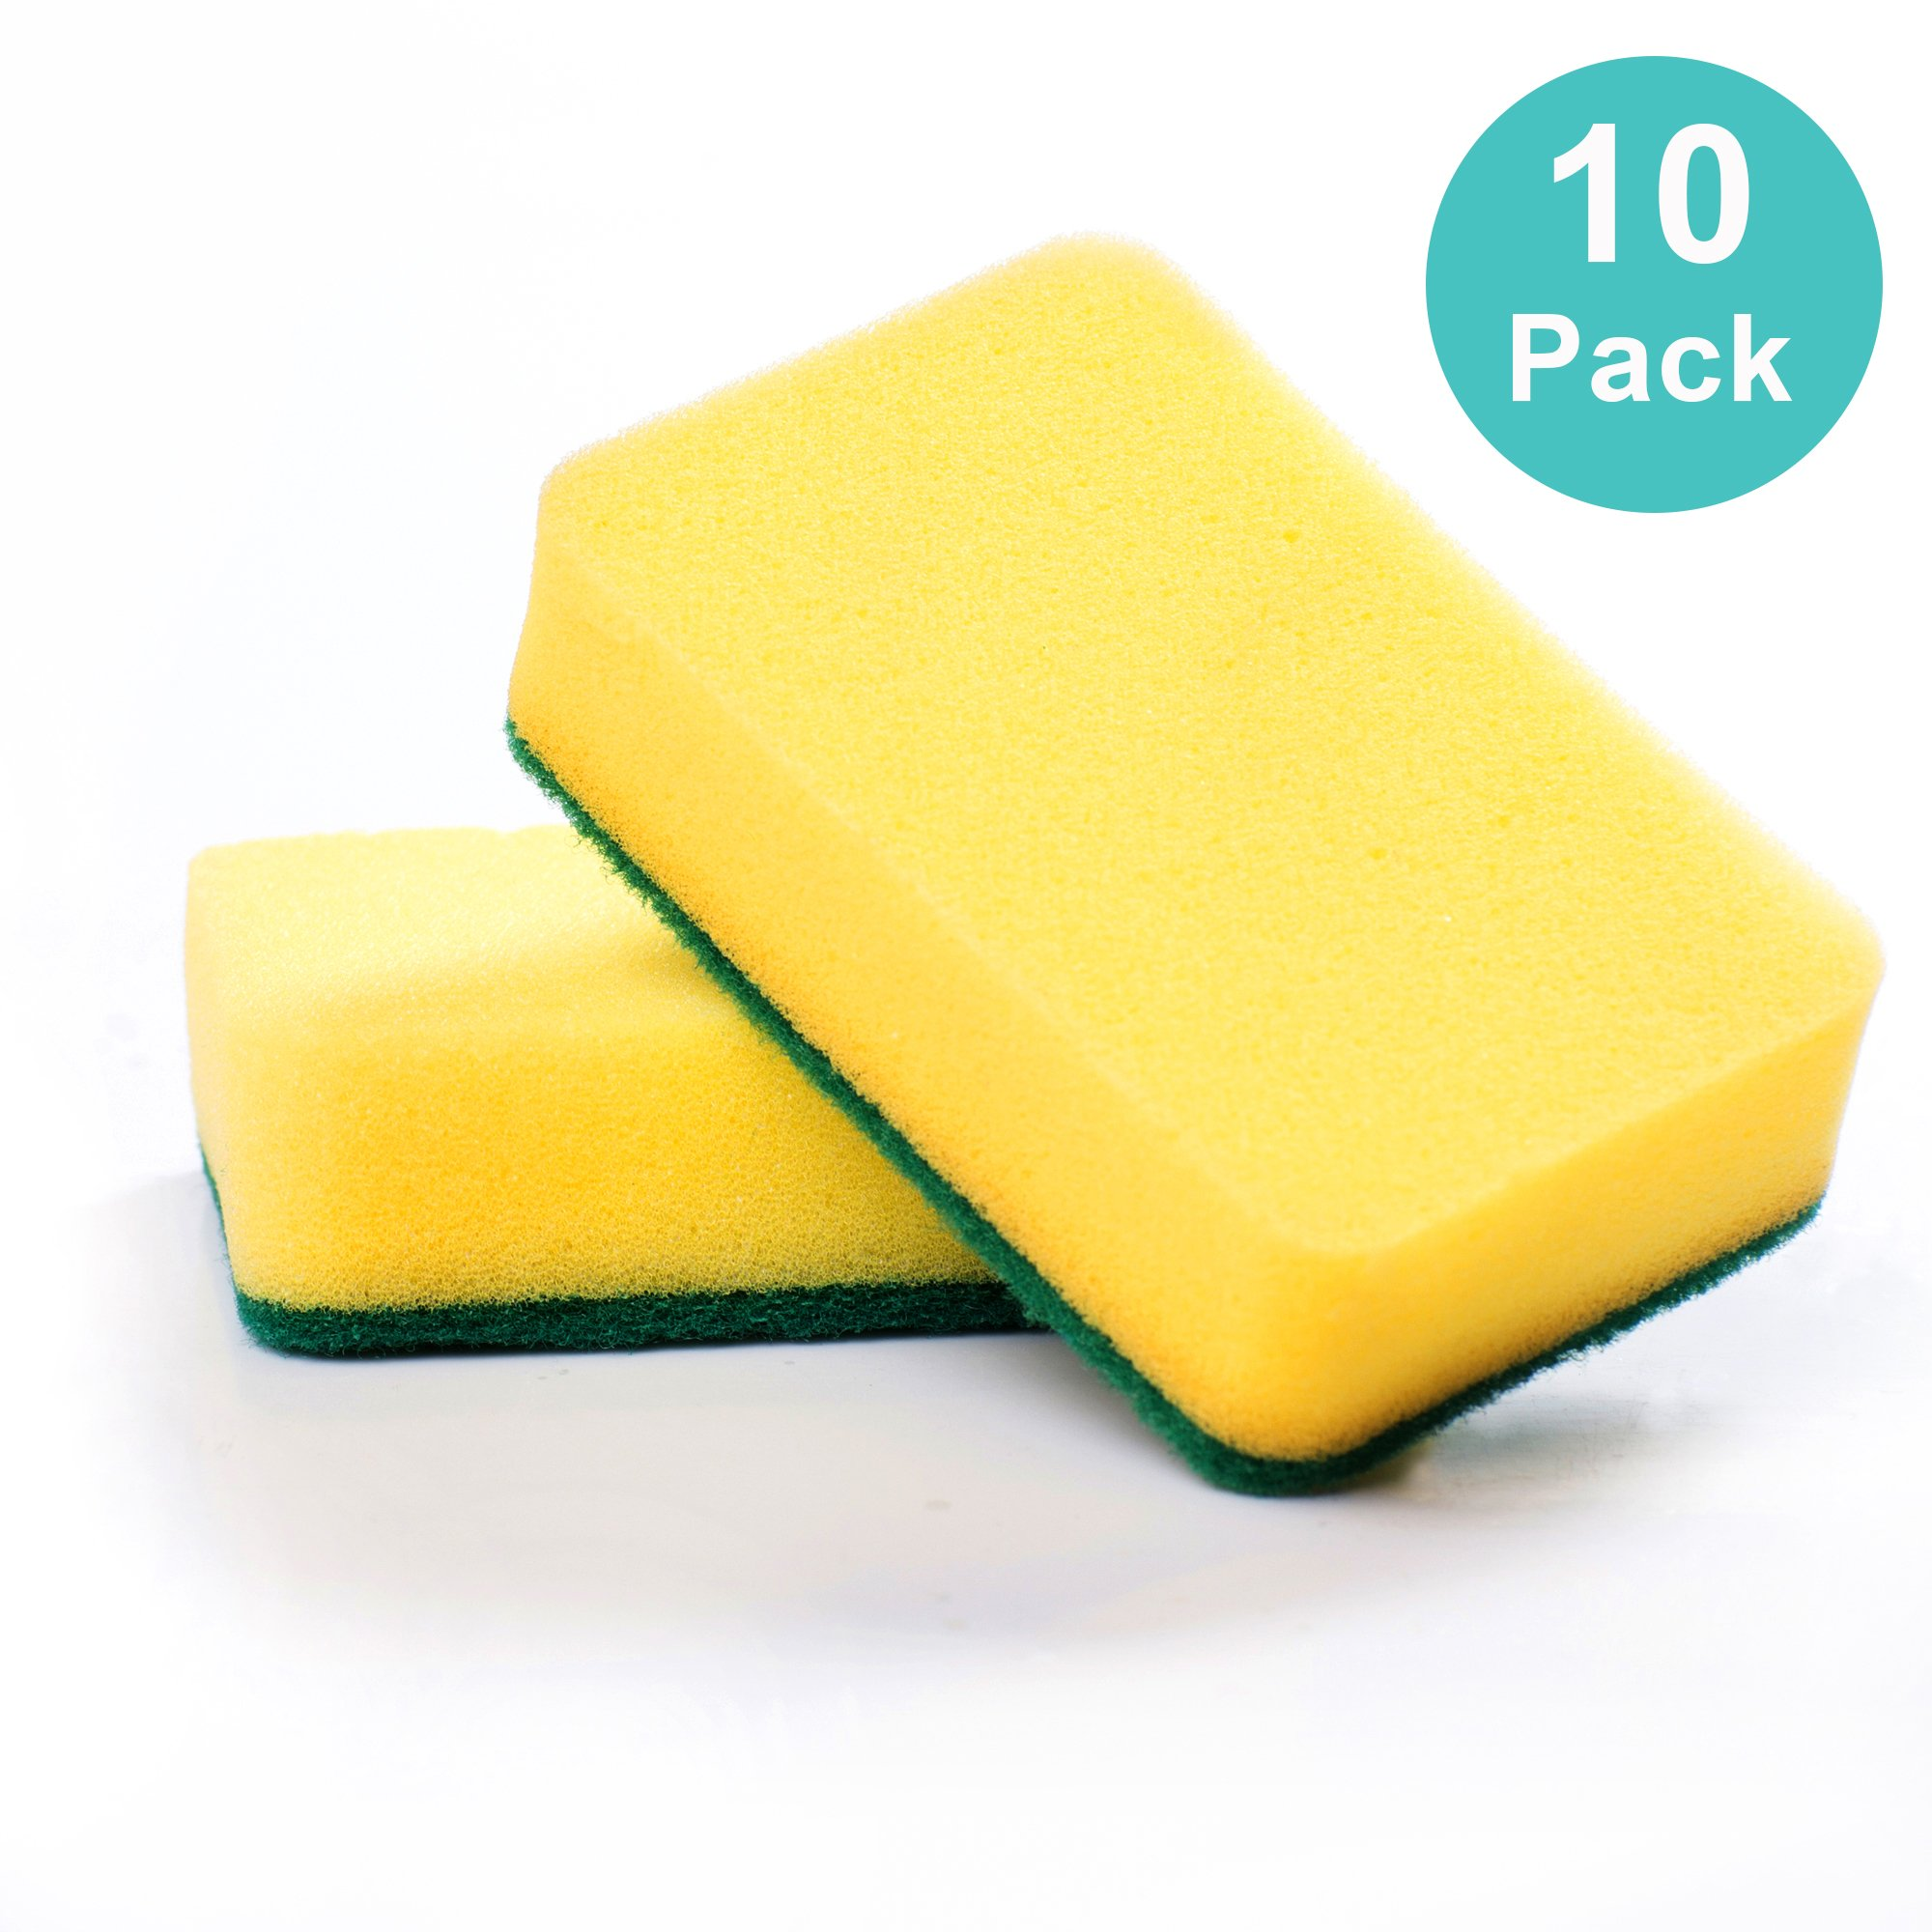 Kitchen sponge scratch free, great cleaning scourer (included pack of 10)